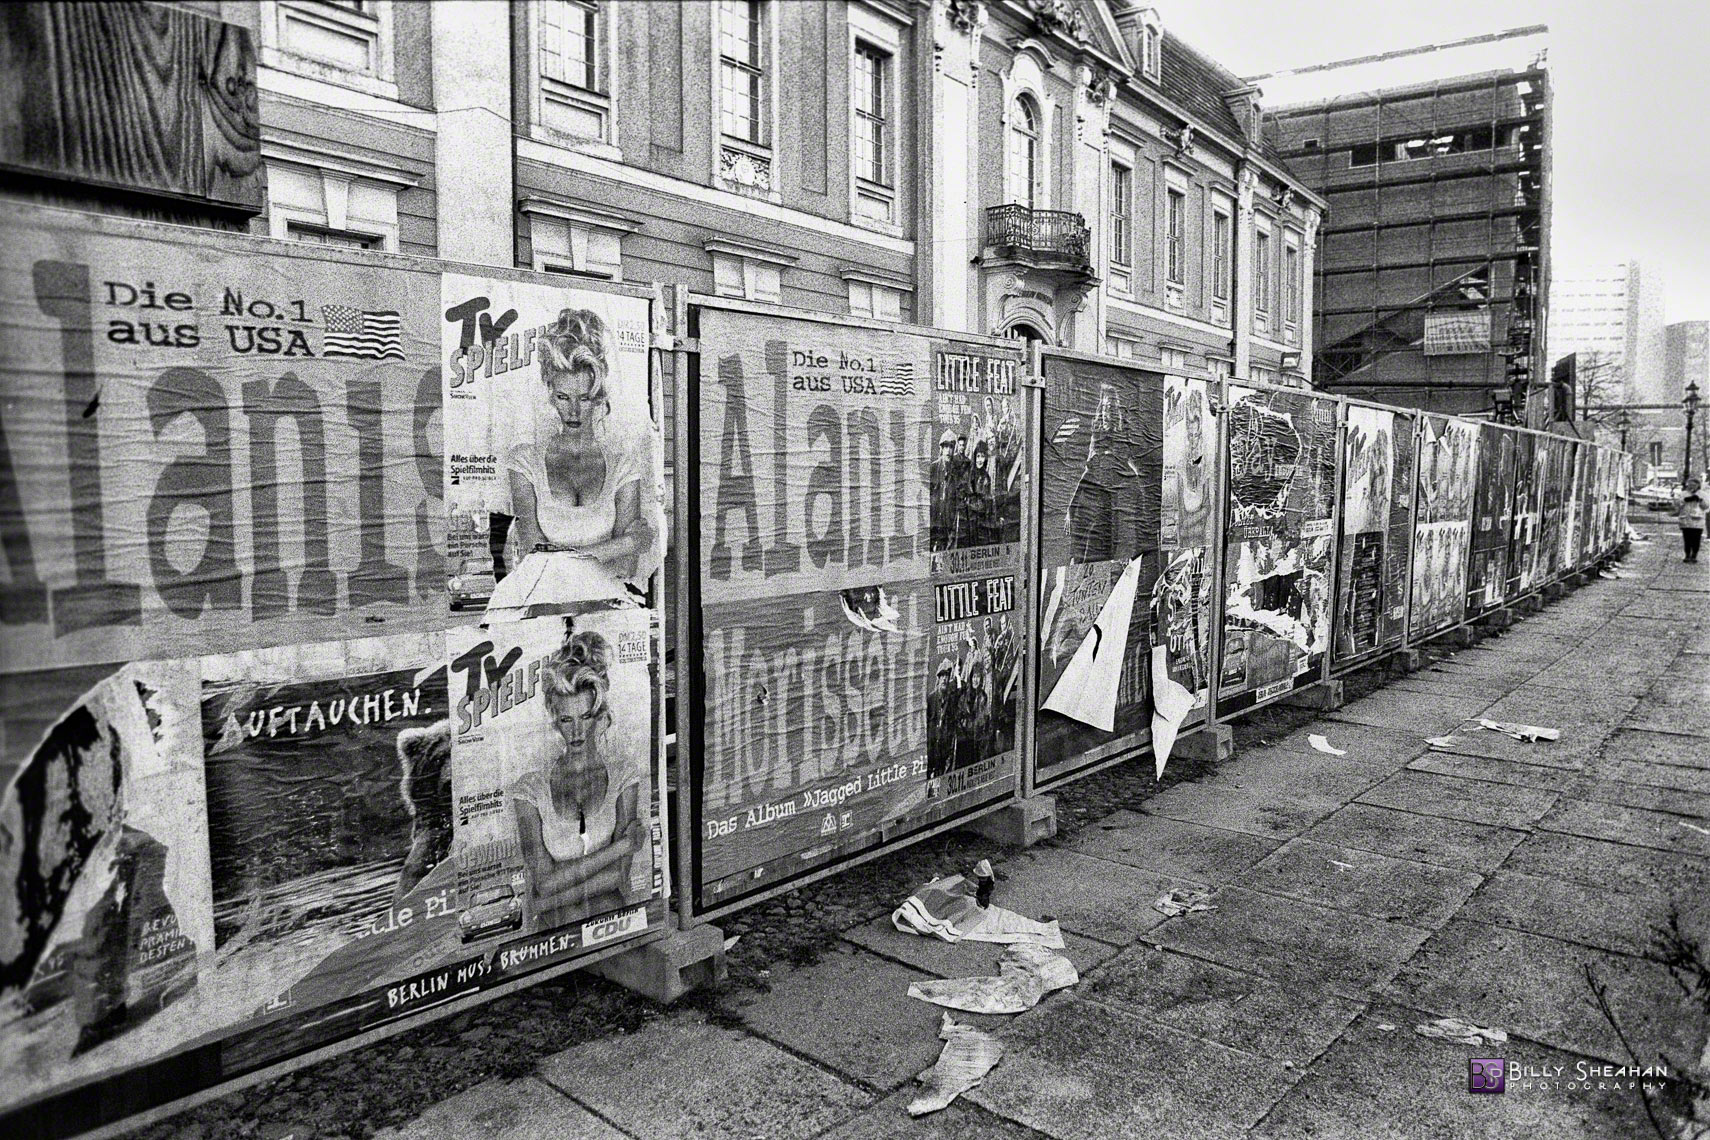 Street_Billboards__1995__Berlin__Germany_Germany-369_17_BW_D